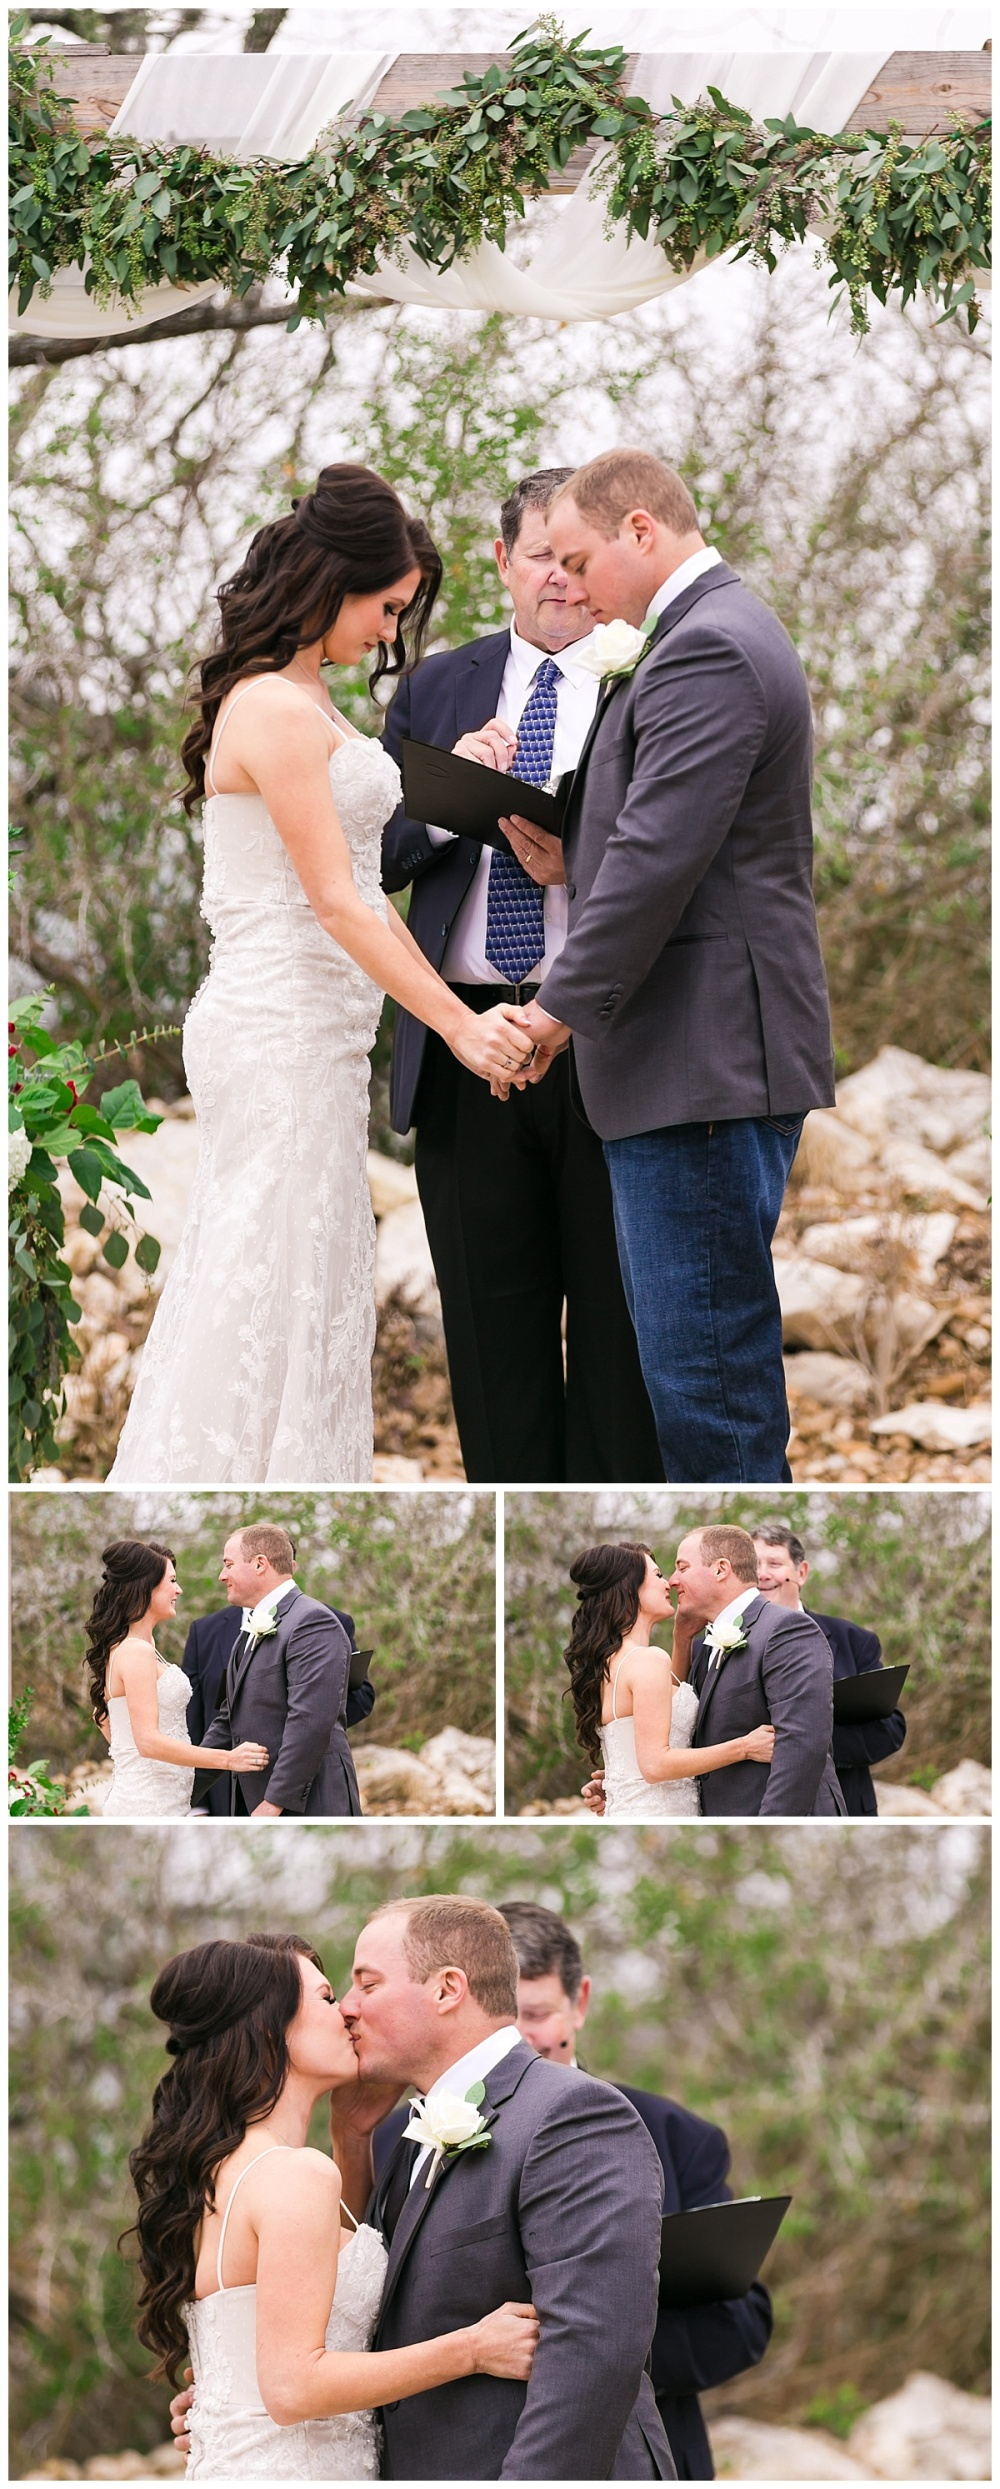 Carly-Barton-Photography-Geronimo-Oaks-Wedding-Venue-Texas-Hill-Country-Ronnie-Sarah_0101.jpg